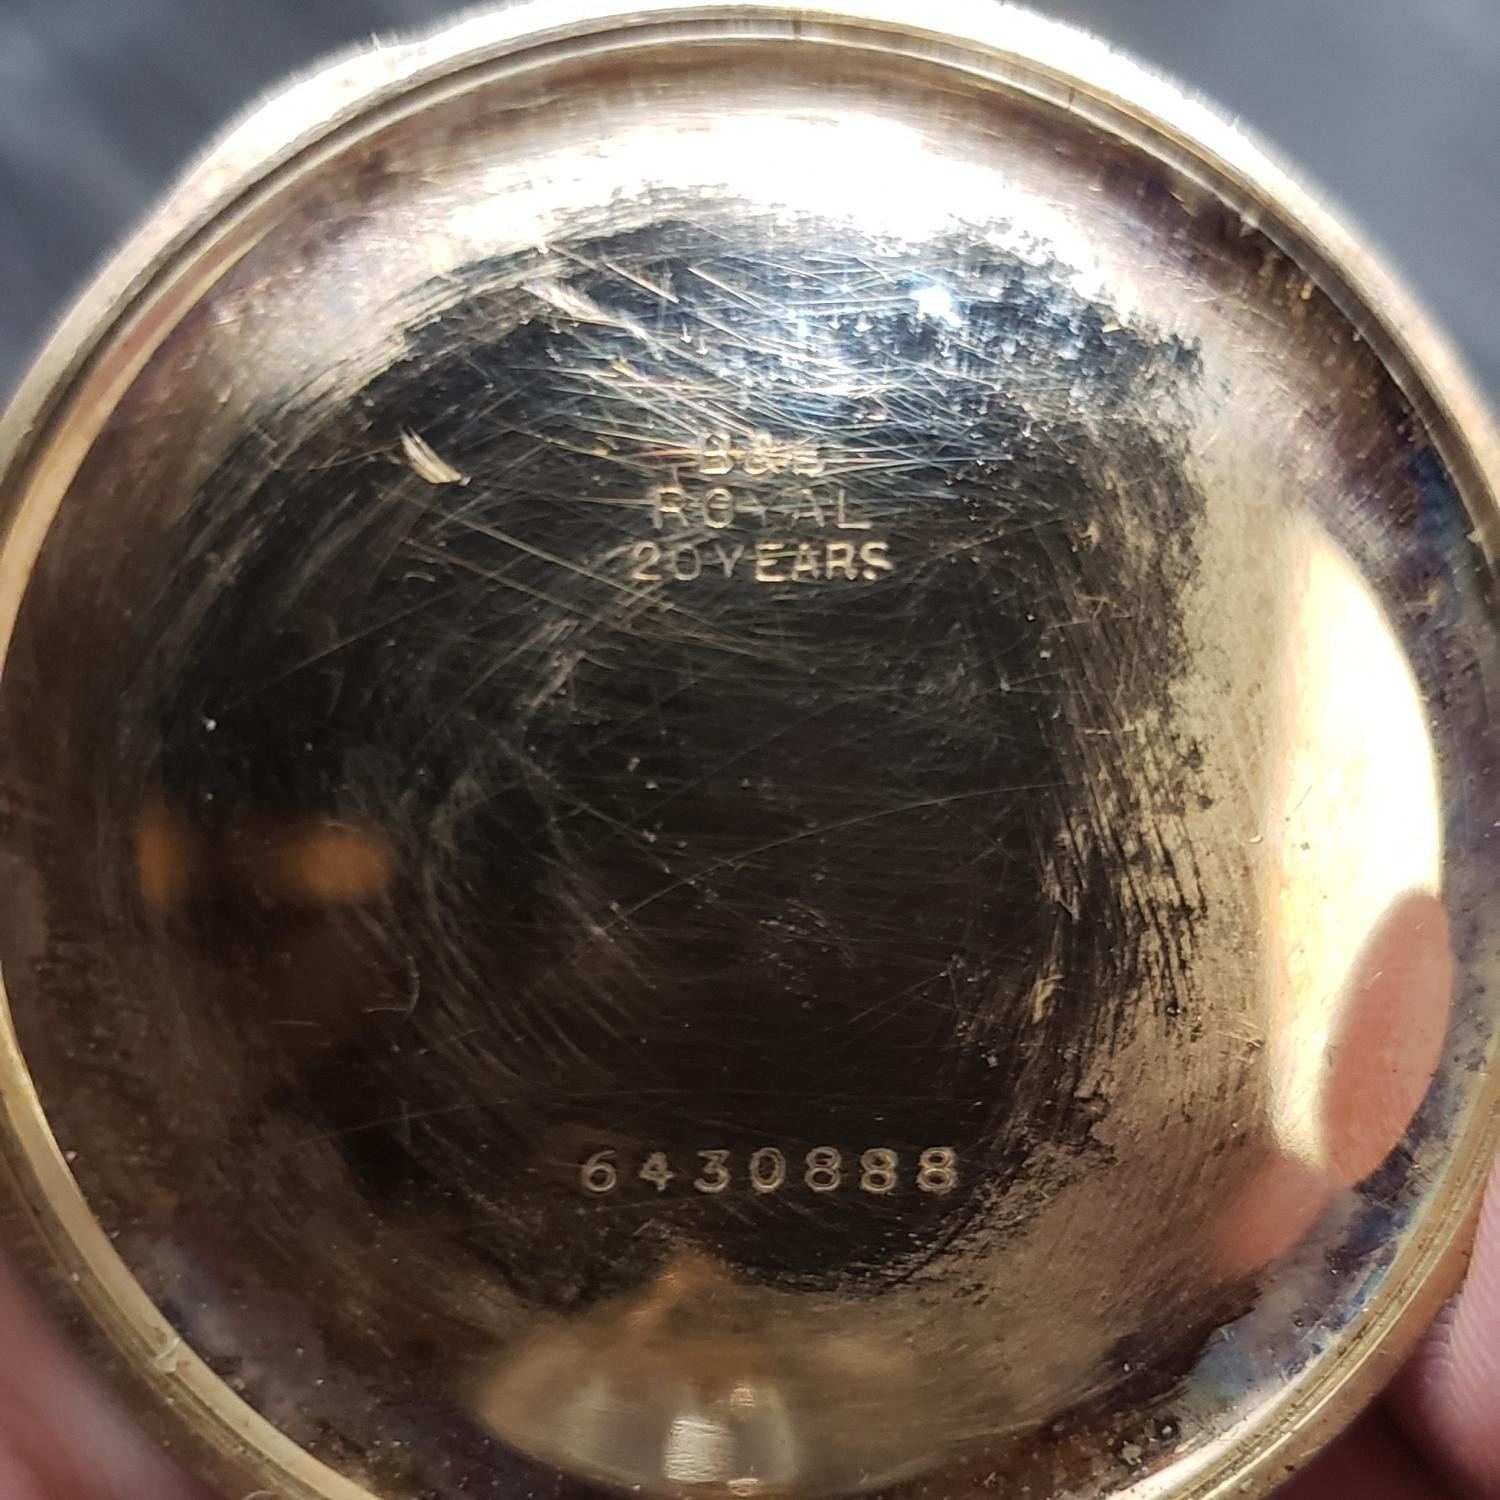 Image of New York Standard Watch Co. 1553 #1011022 Case